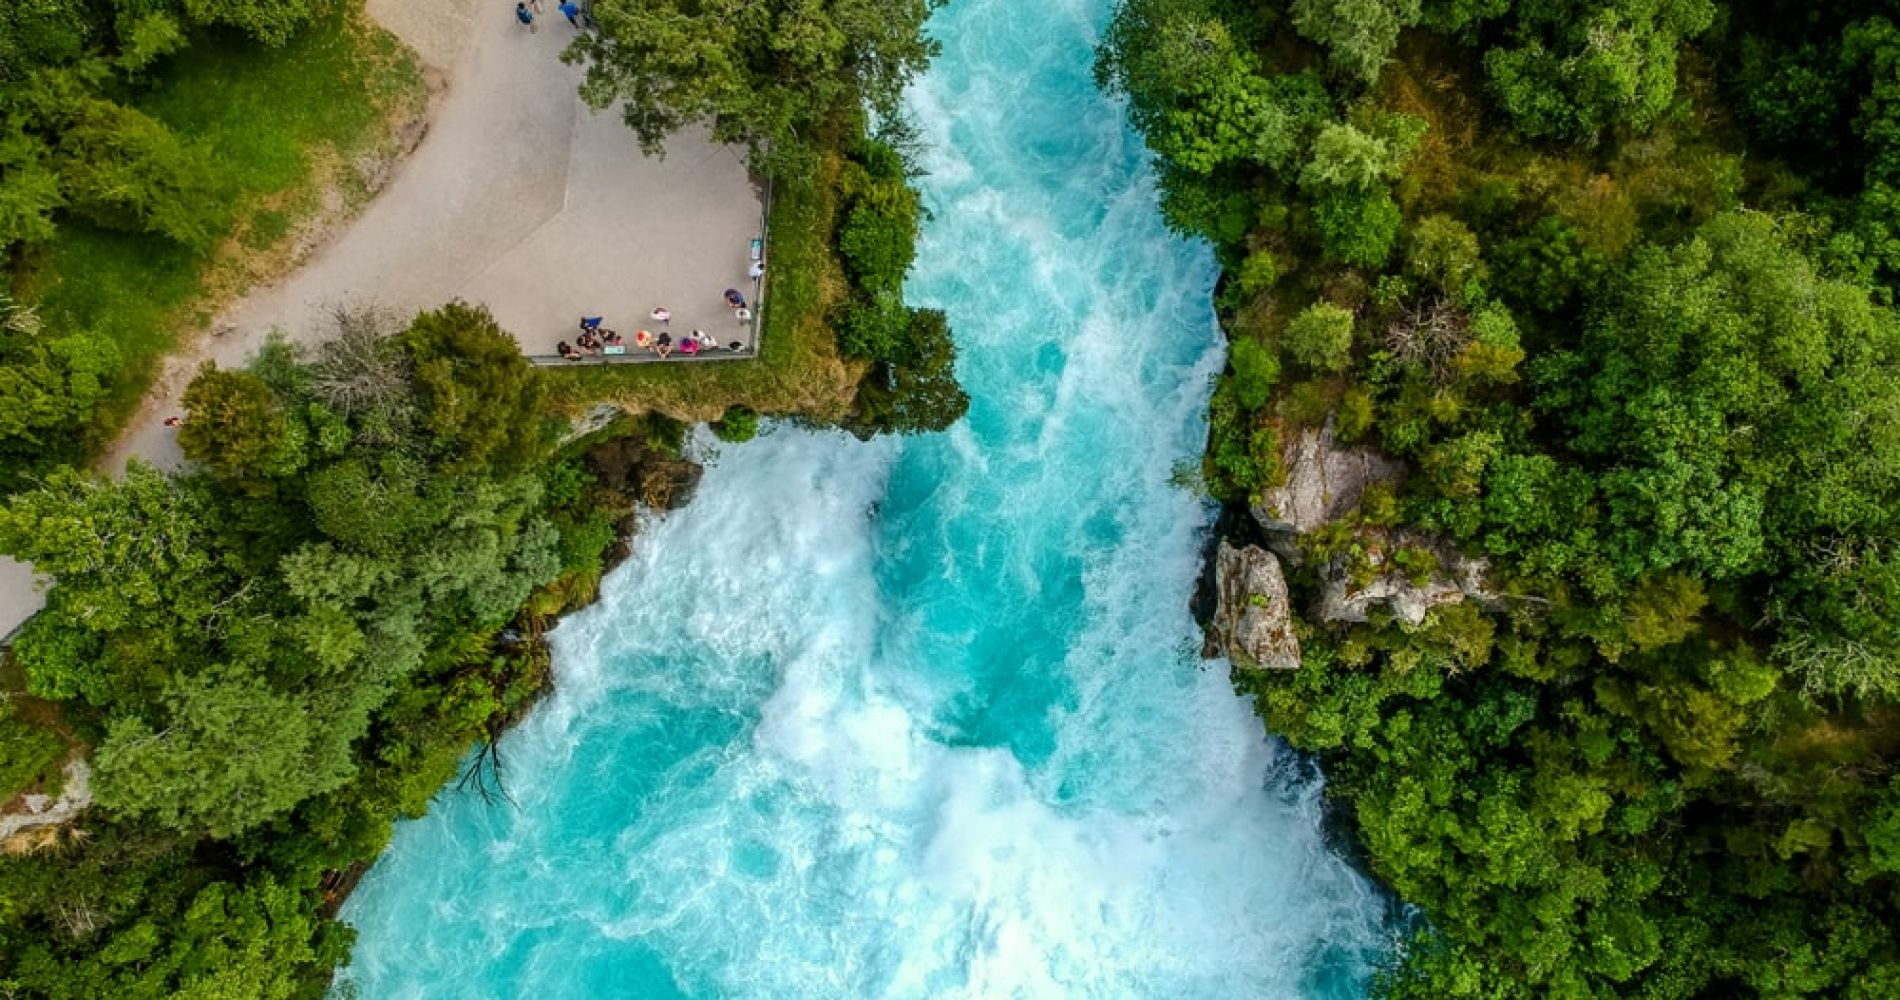 Take a picture of Huka Falls